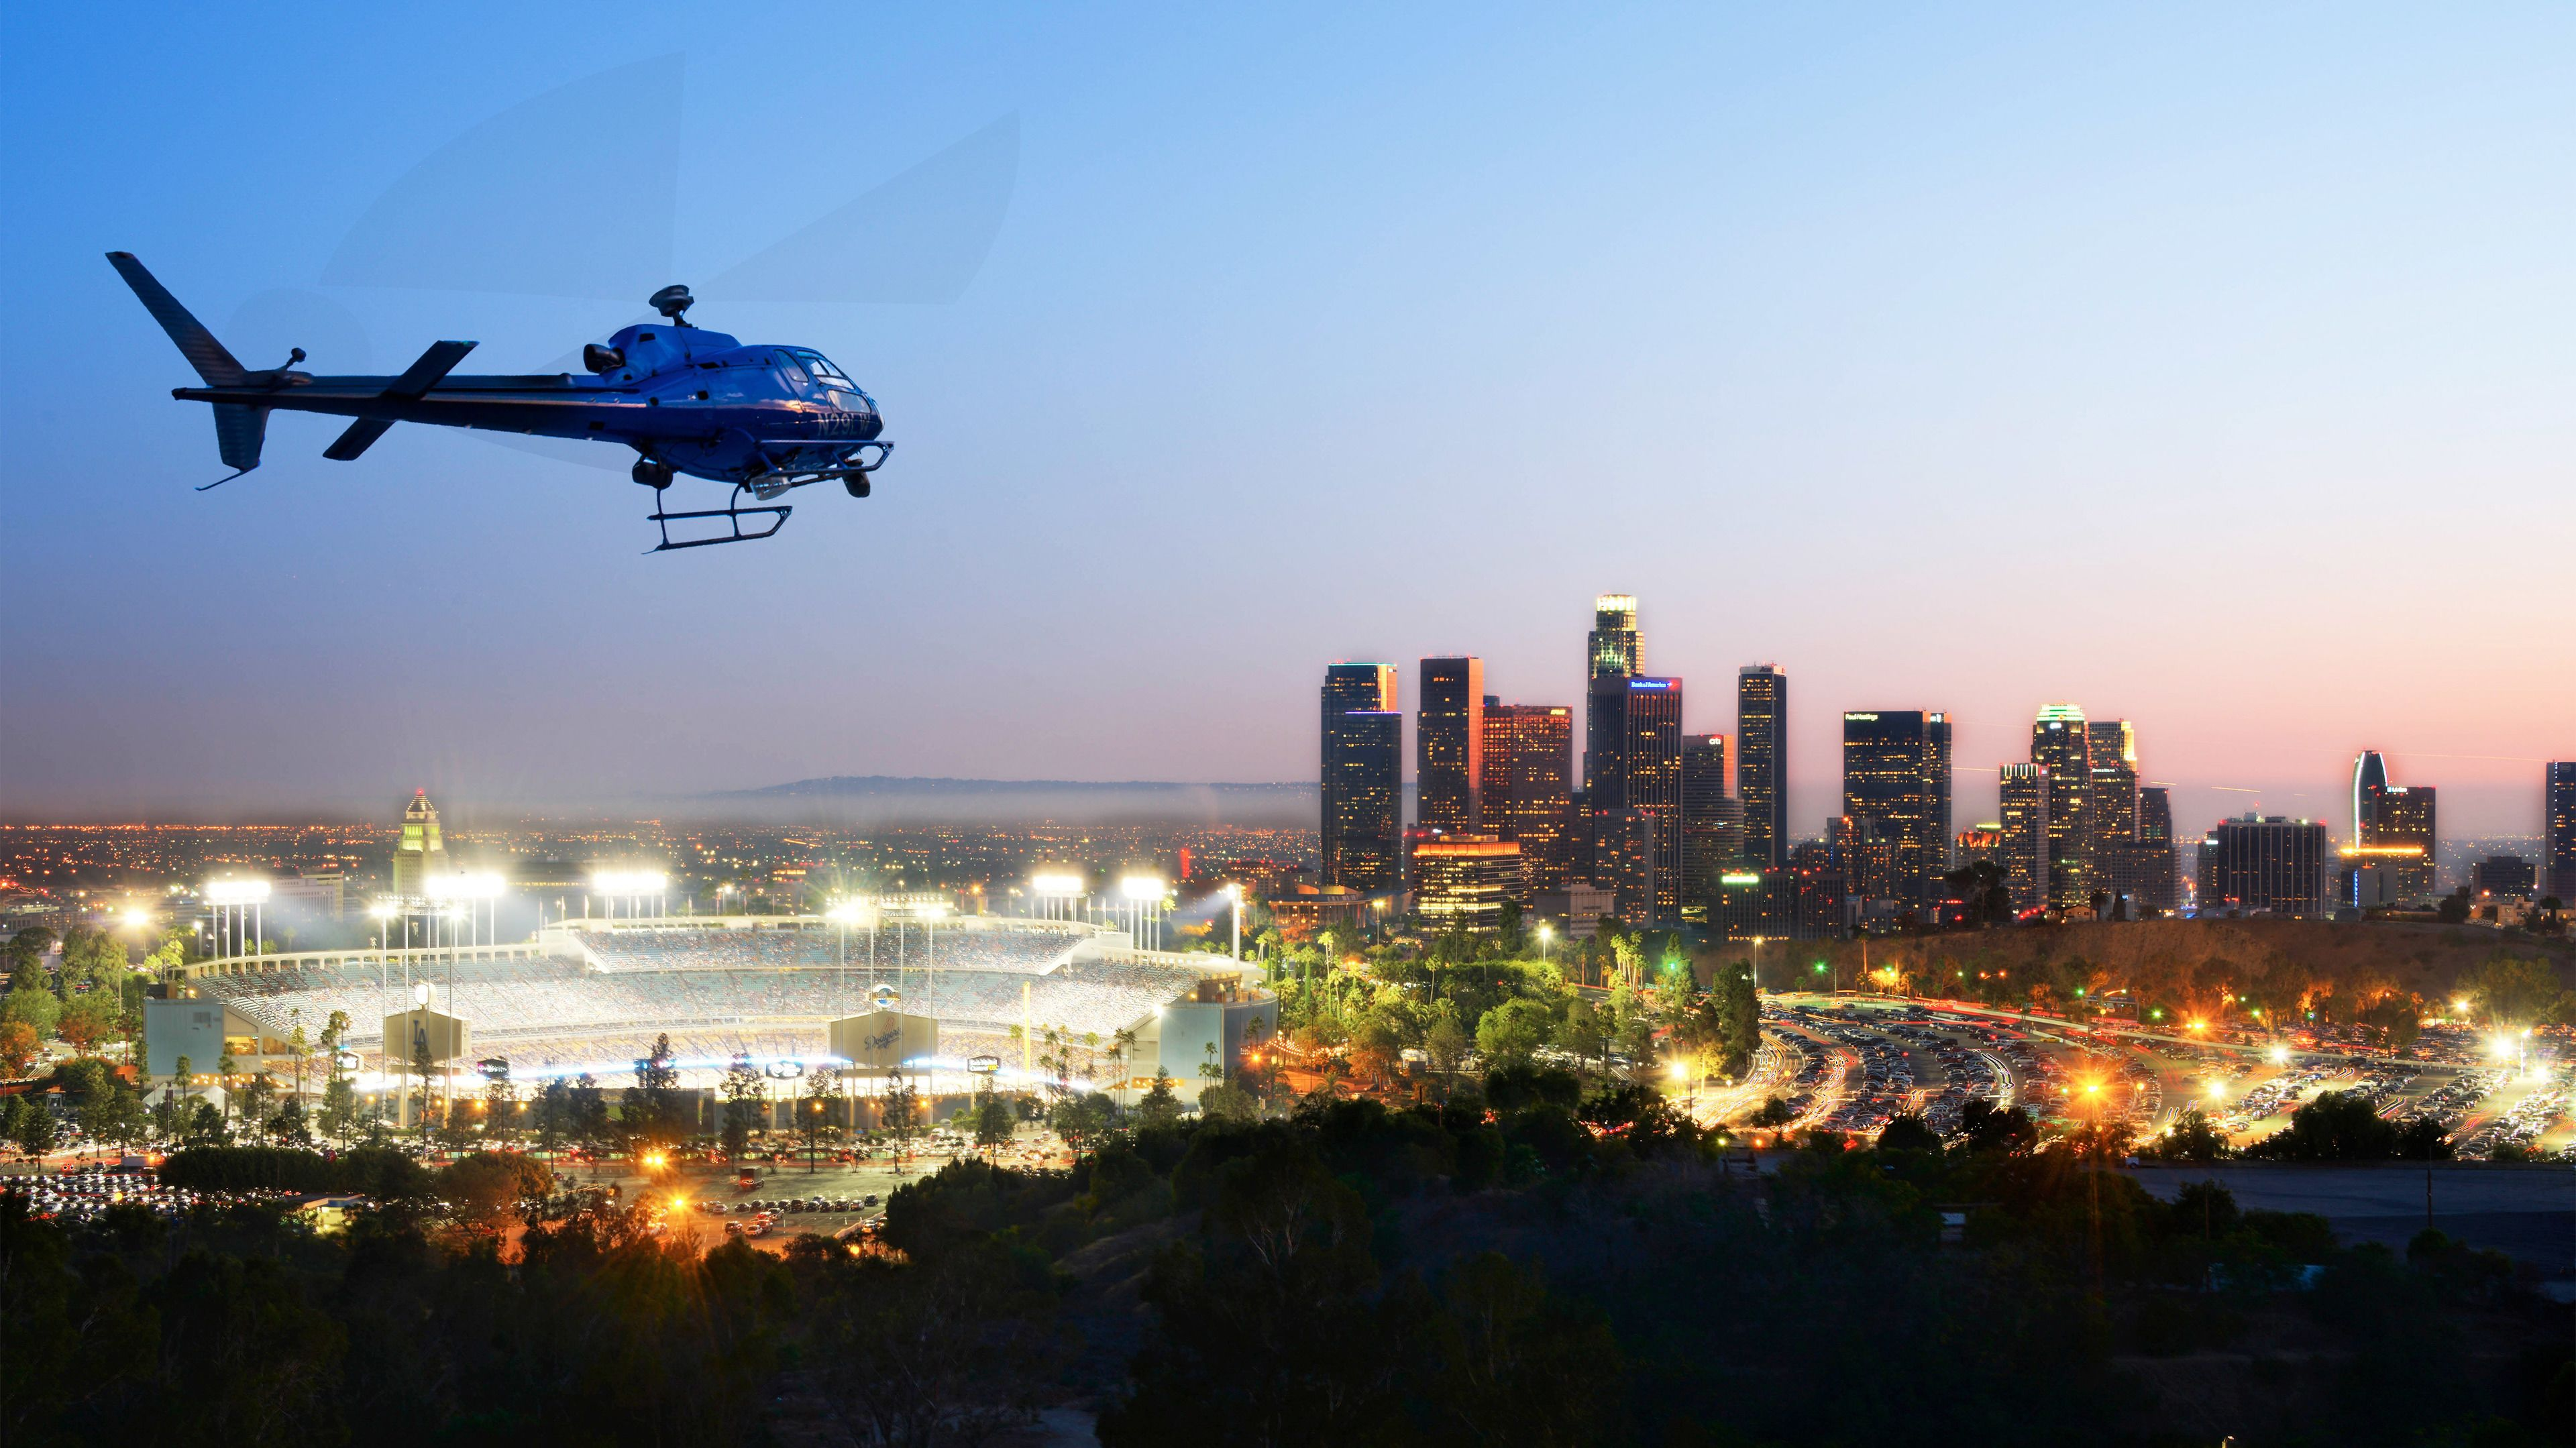 Helicopter flying over the city of Los Angeles on a lit night